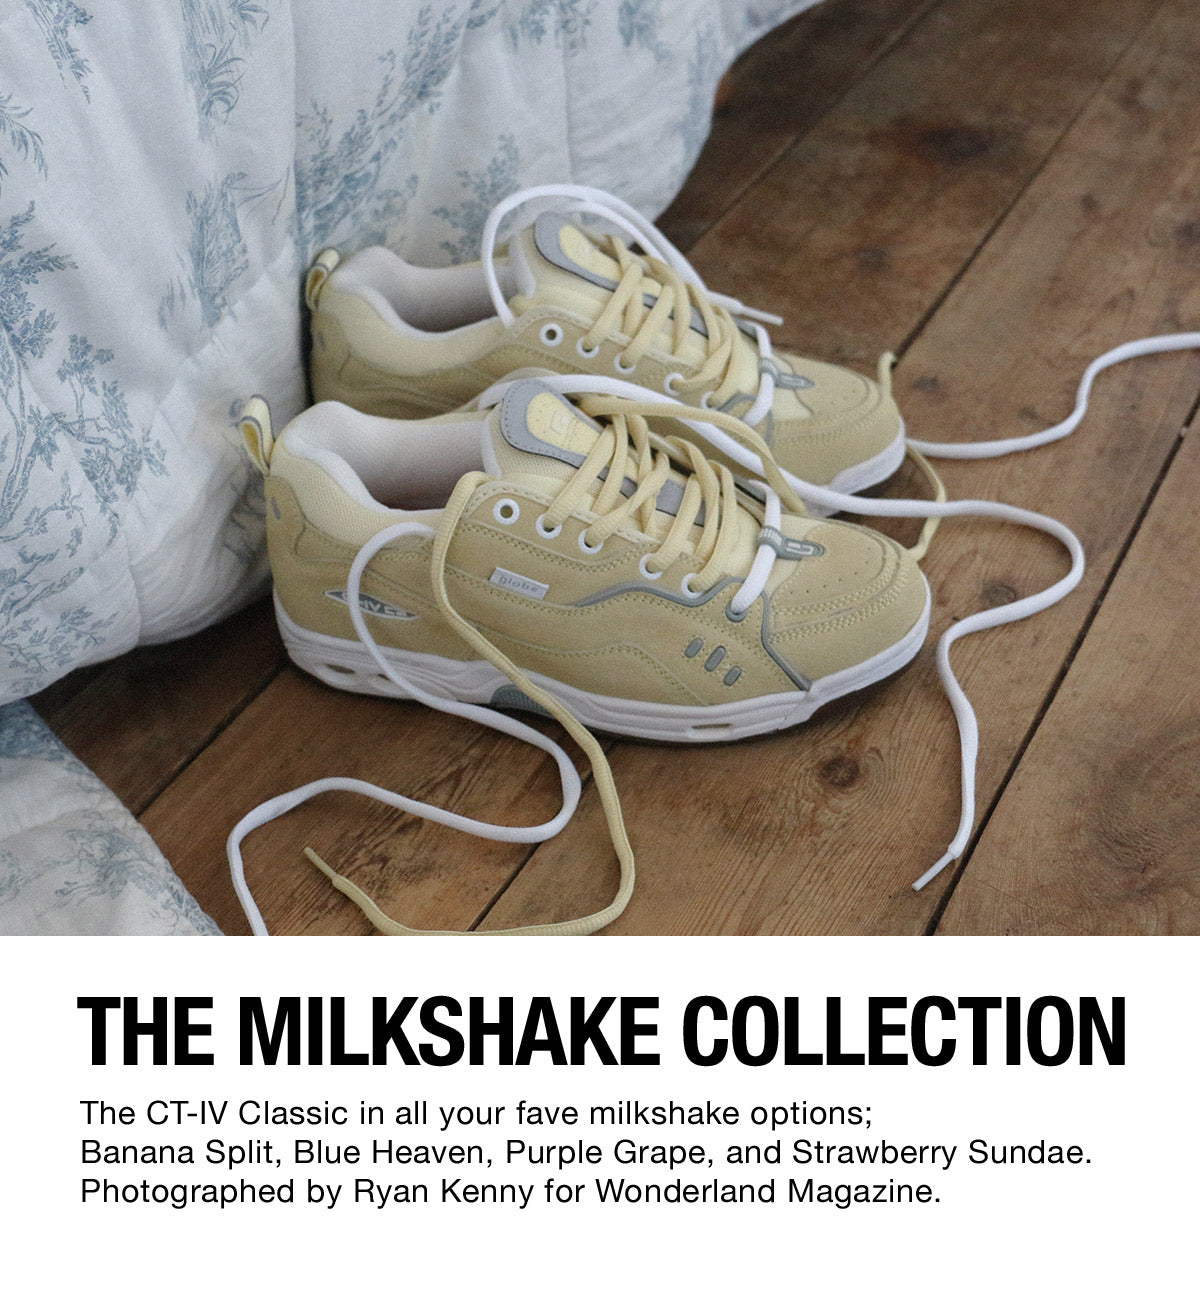 THE MILKSHAKE COLLECTION  CT IV CLASSIC